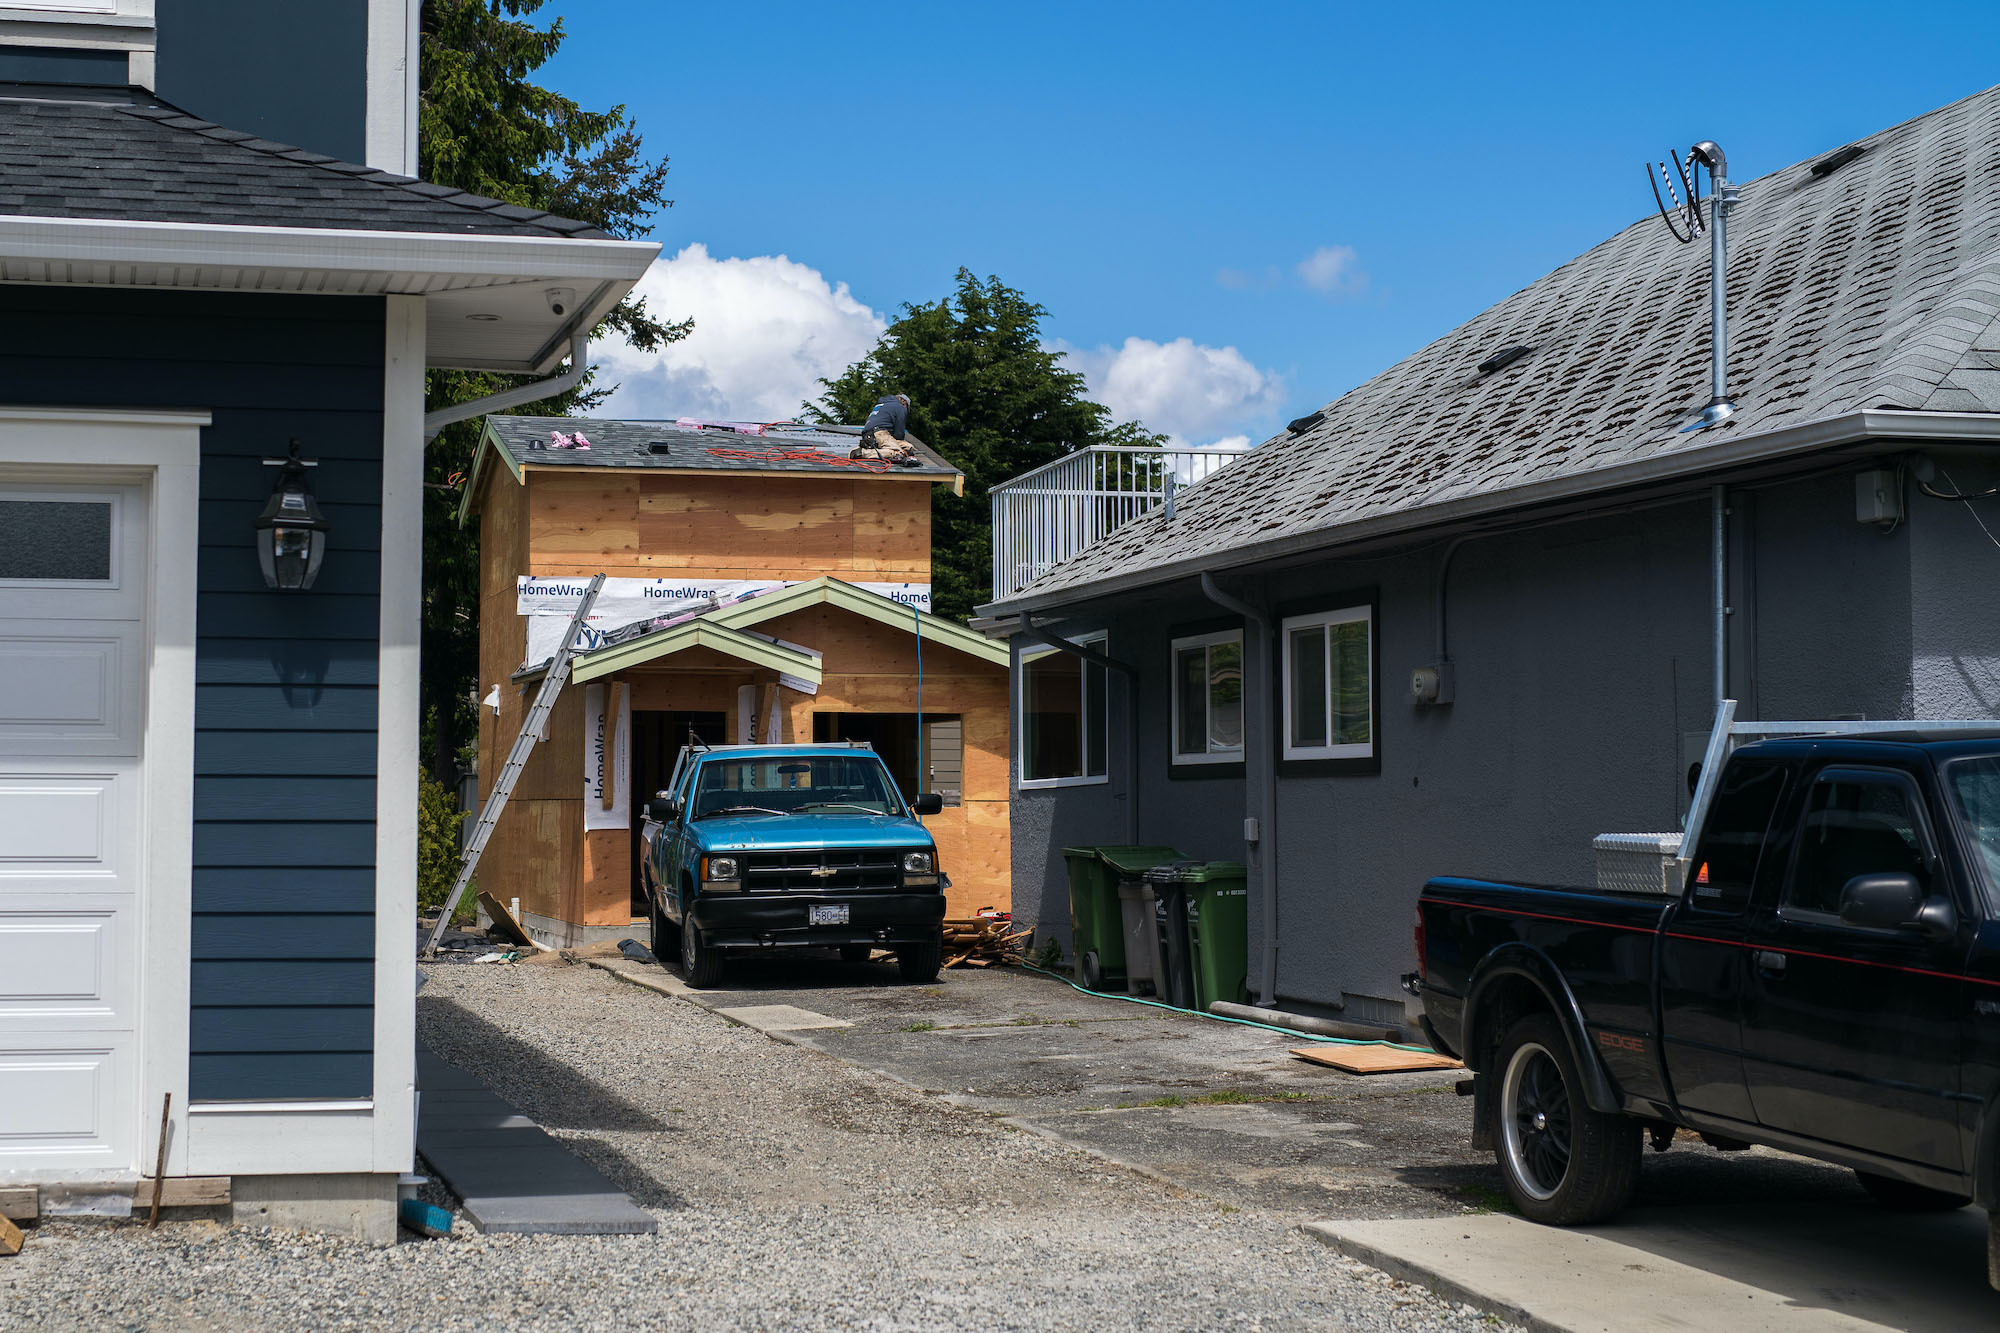 Capital Ideas: Housing supply should be a priority for Victoria council and voters